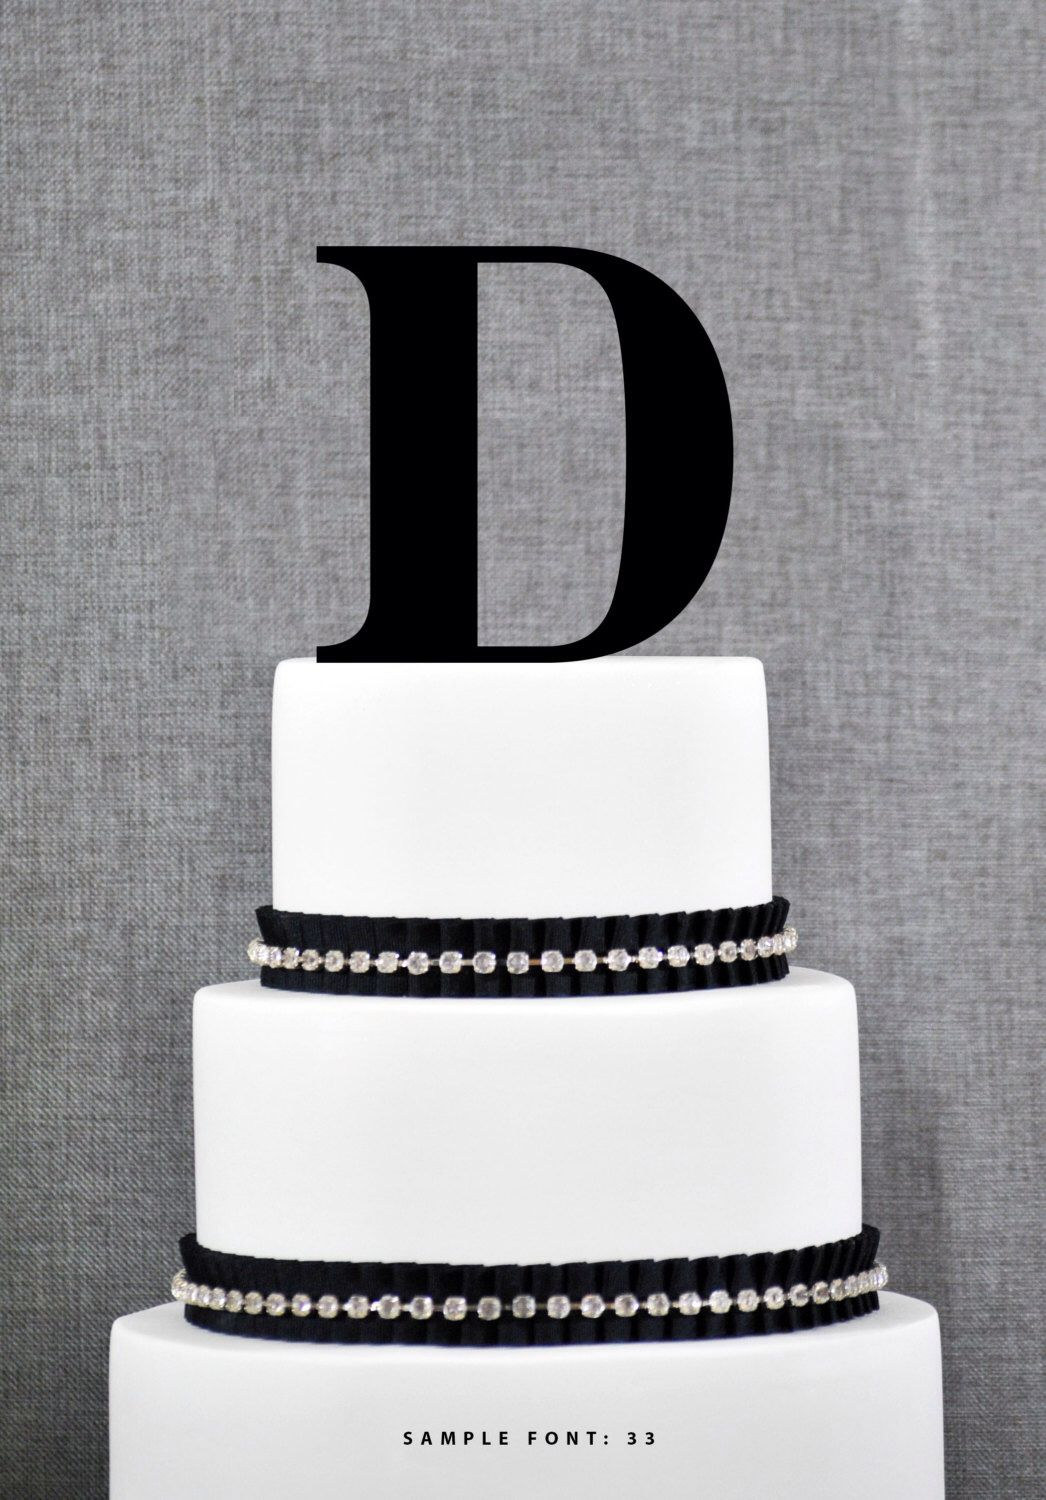 Letter D - Initial Cake Topper, Monogram Wedding Cake Topper, Custom Cake Topper by ChicagoFactoryDesign on Etsy https://www.etsy.com/listing/189636430/letter-d-initial-cake-topper-monogram